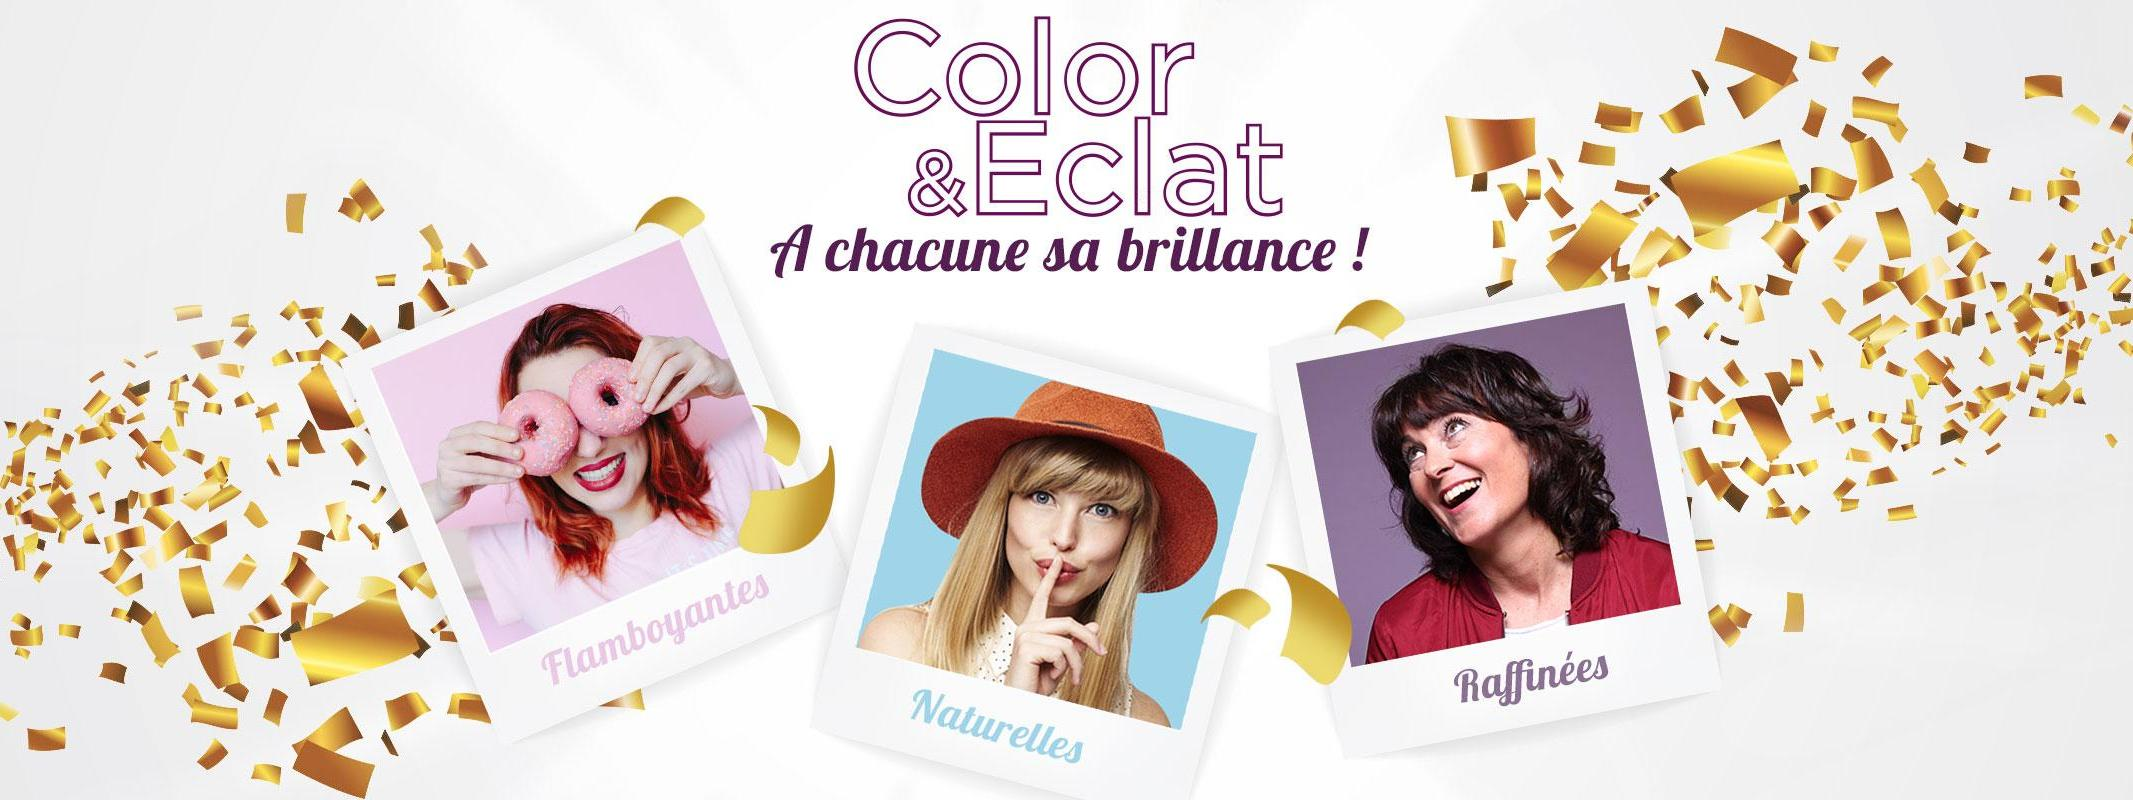 Color&Eclat